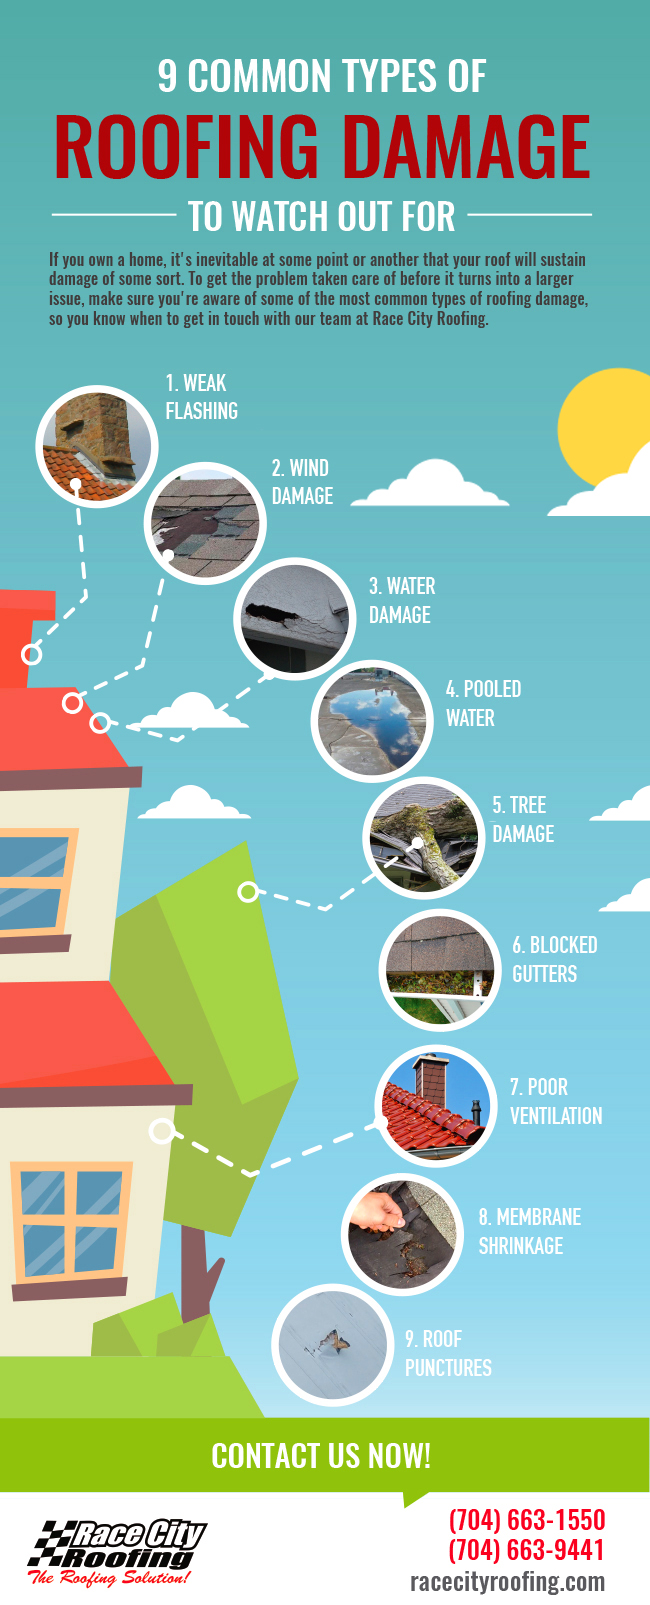 9 Common Types of Roofing Damage to Watch Out For [infographic]